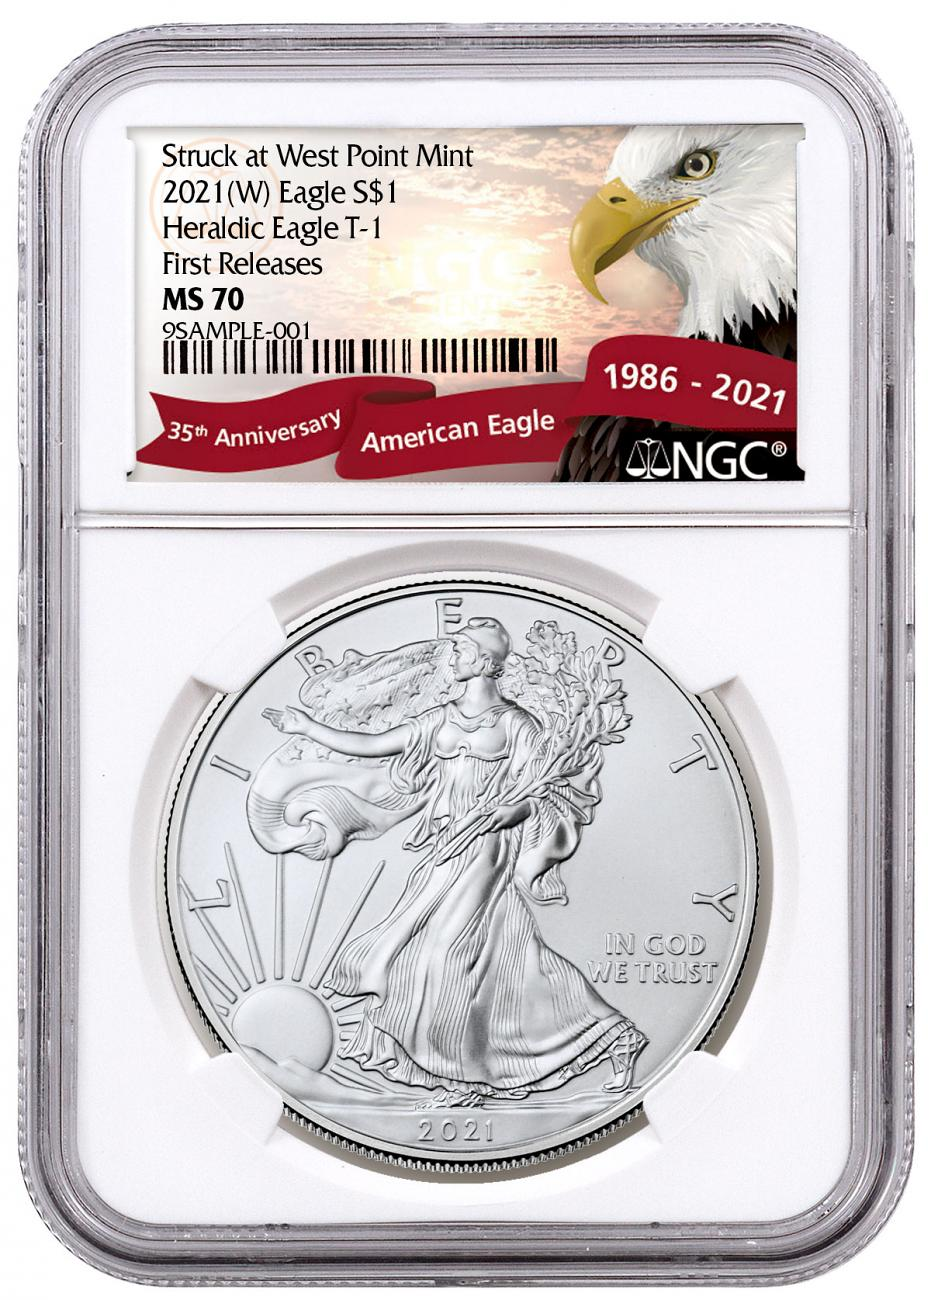 2021-(W) American Silver Eagle Struck at West Point Mint NGC MS70 FR Exclusive Eagle Label